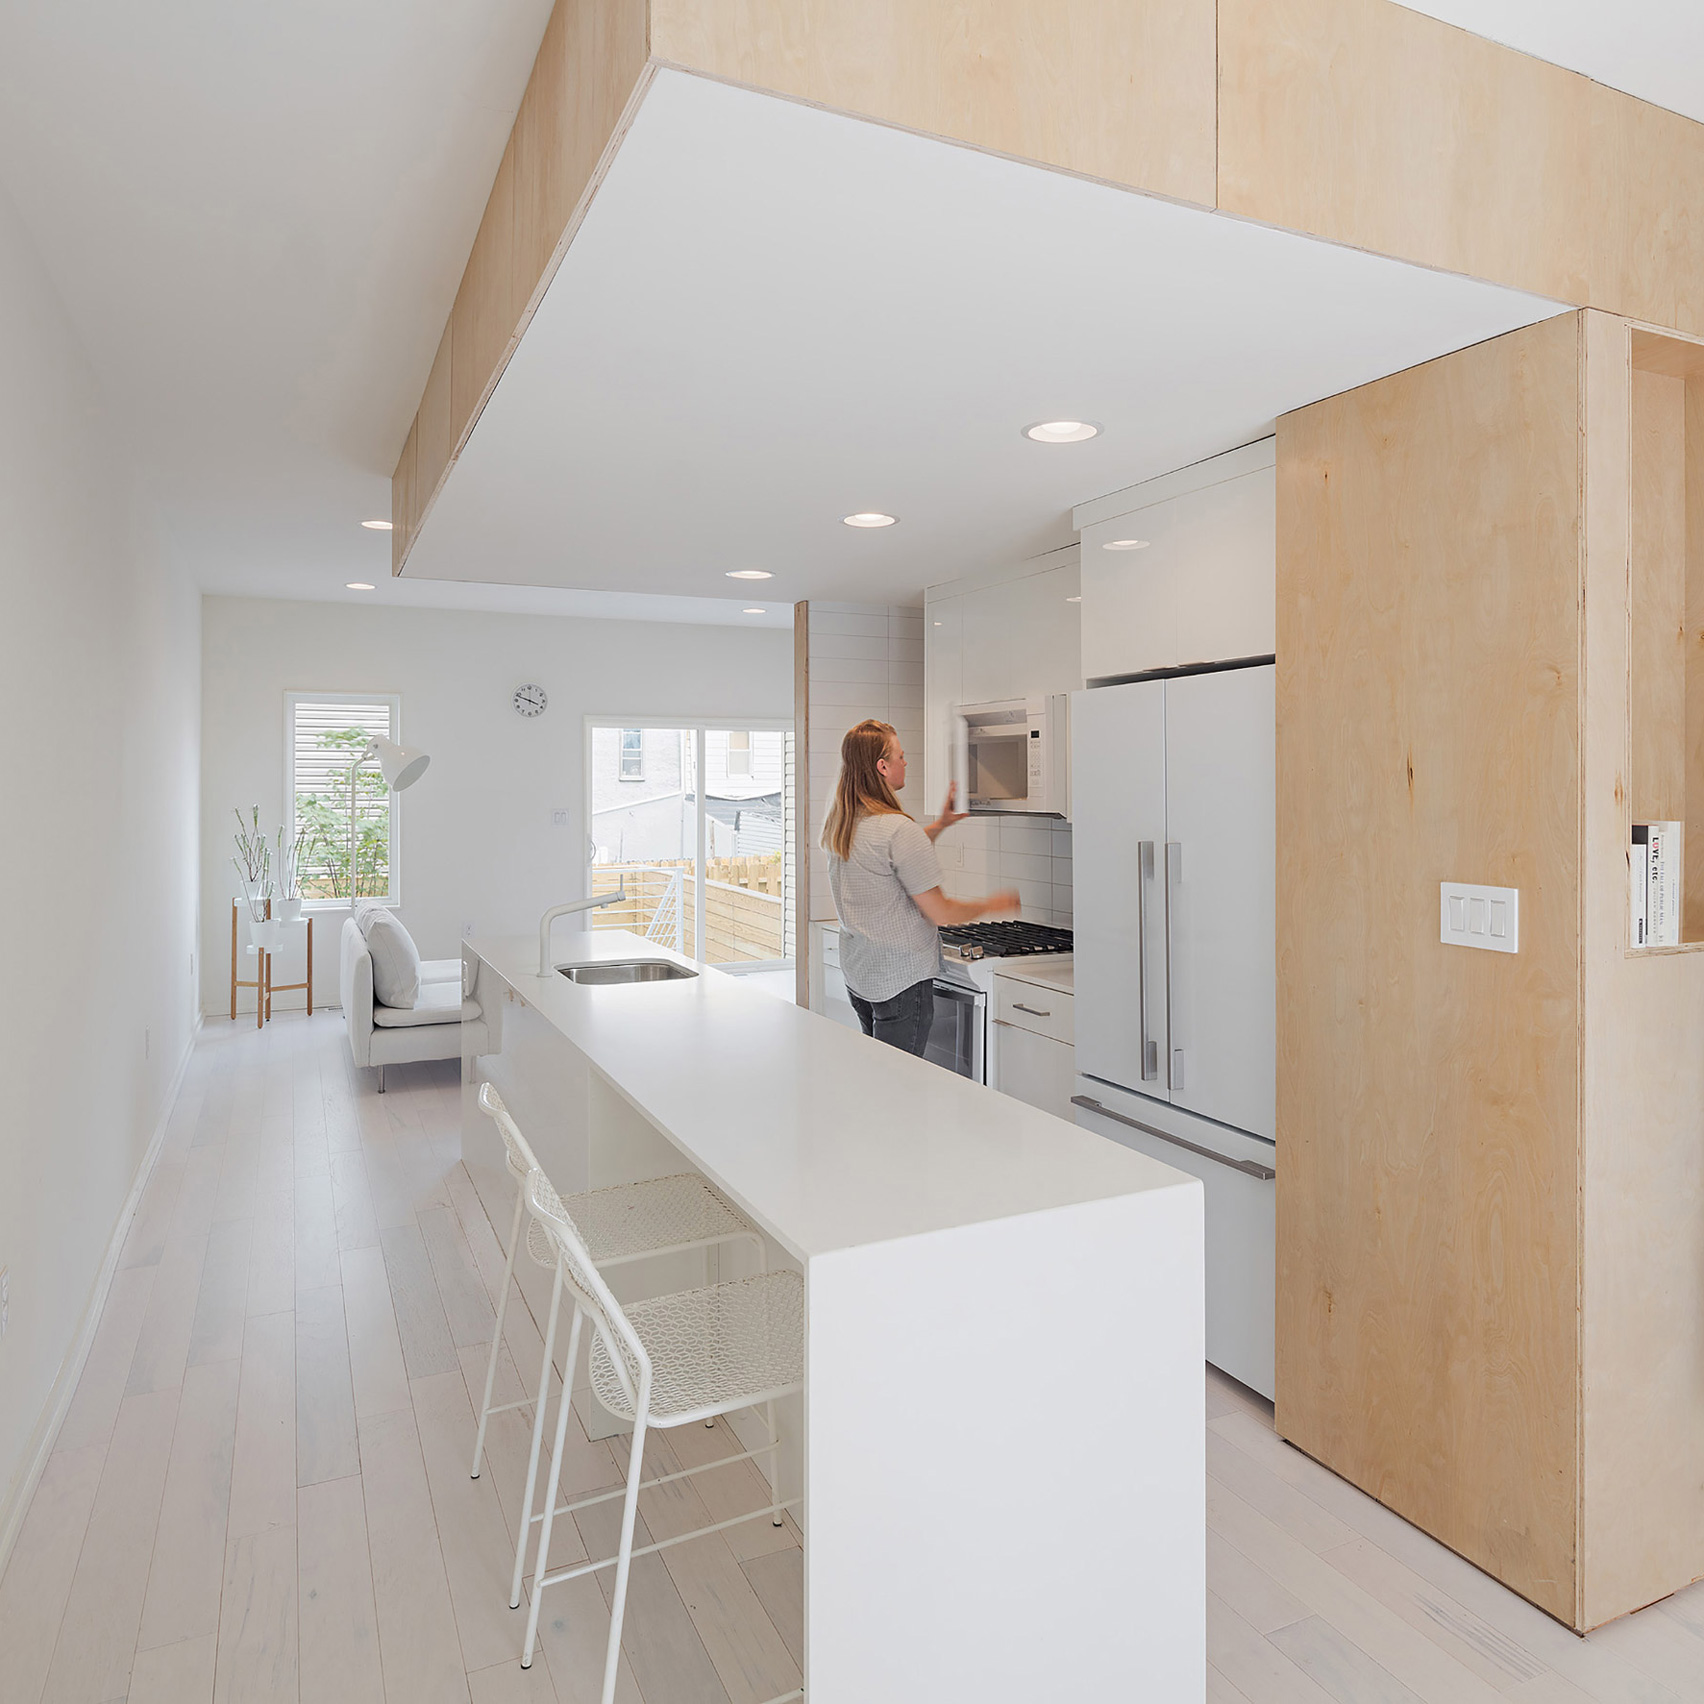 Architecture and design in Philadelphia | Dezeen